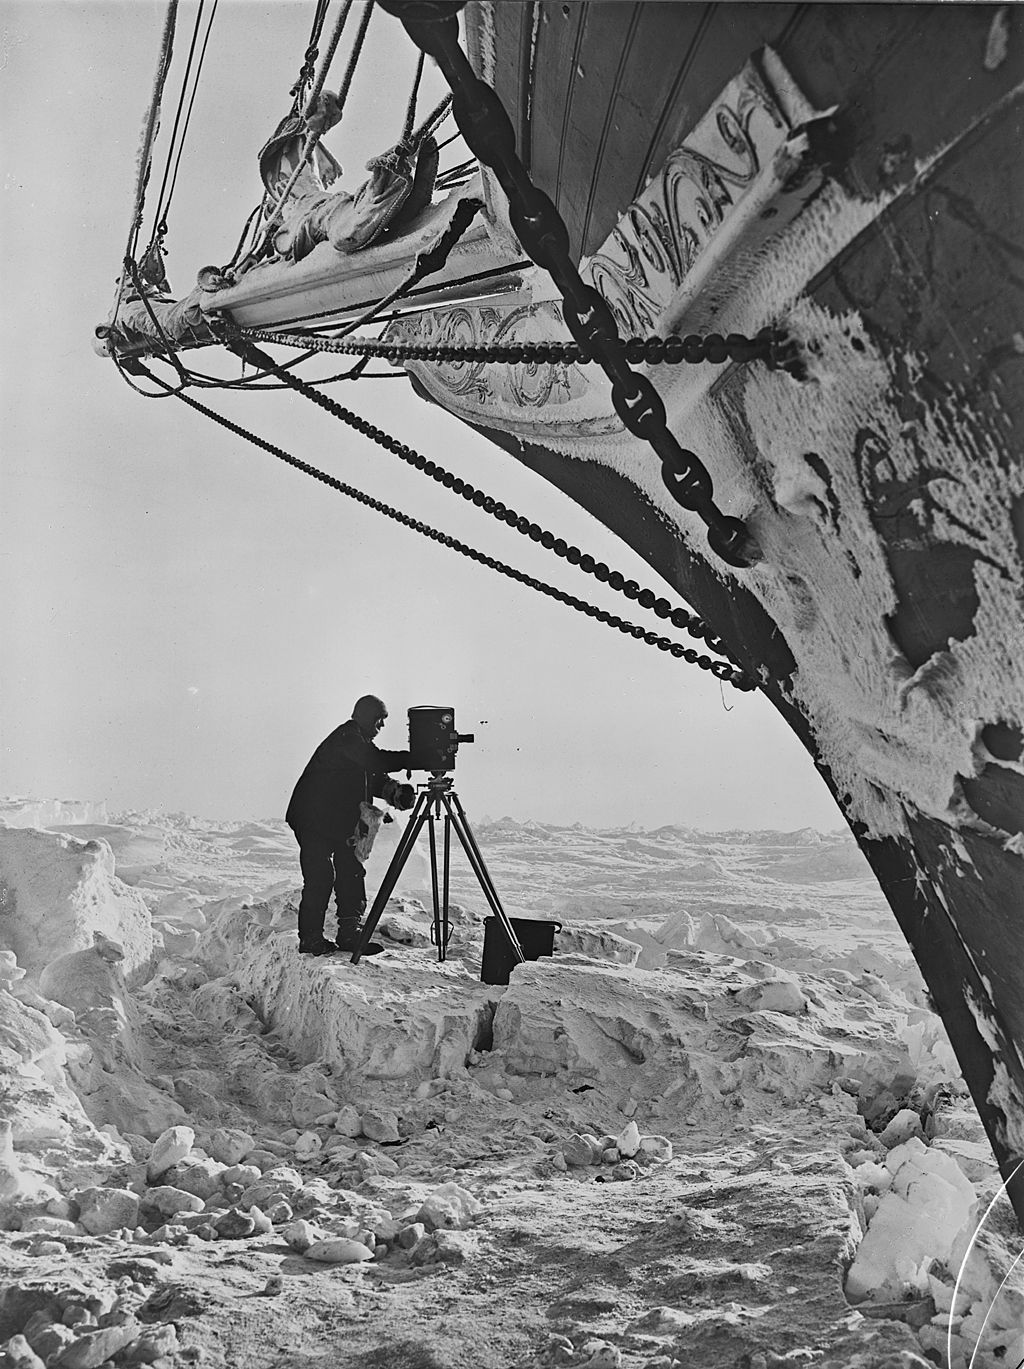 Frank Hurley in the shadow of Endurance